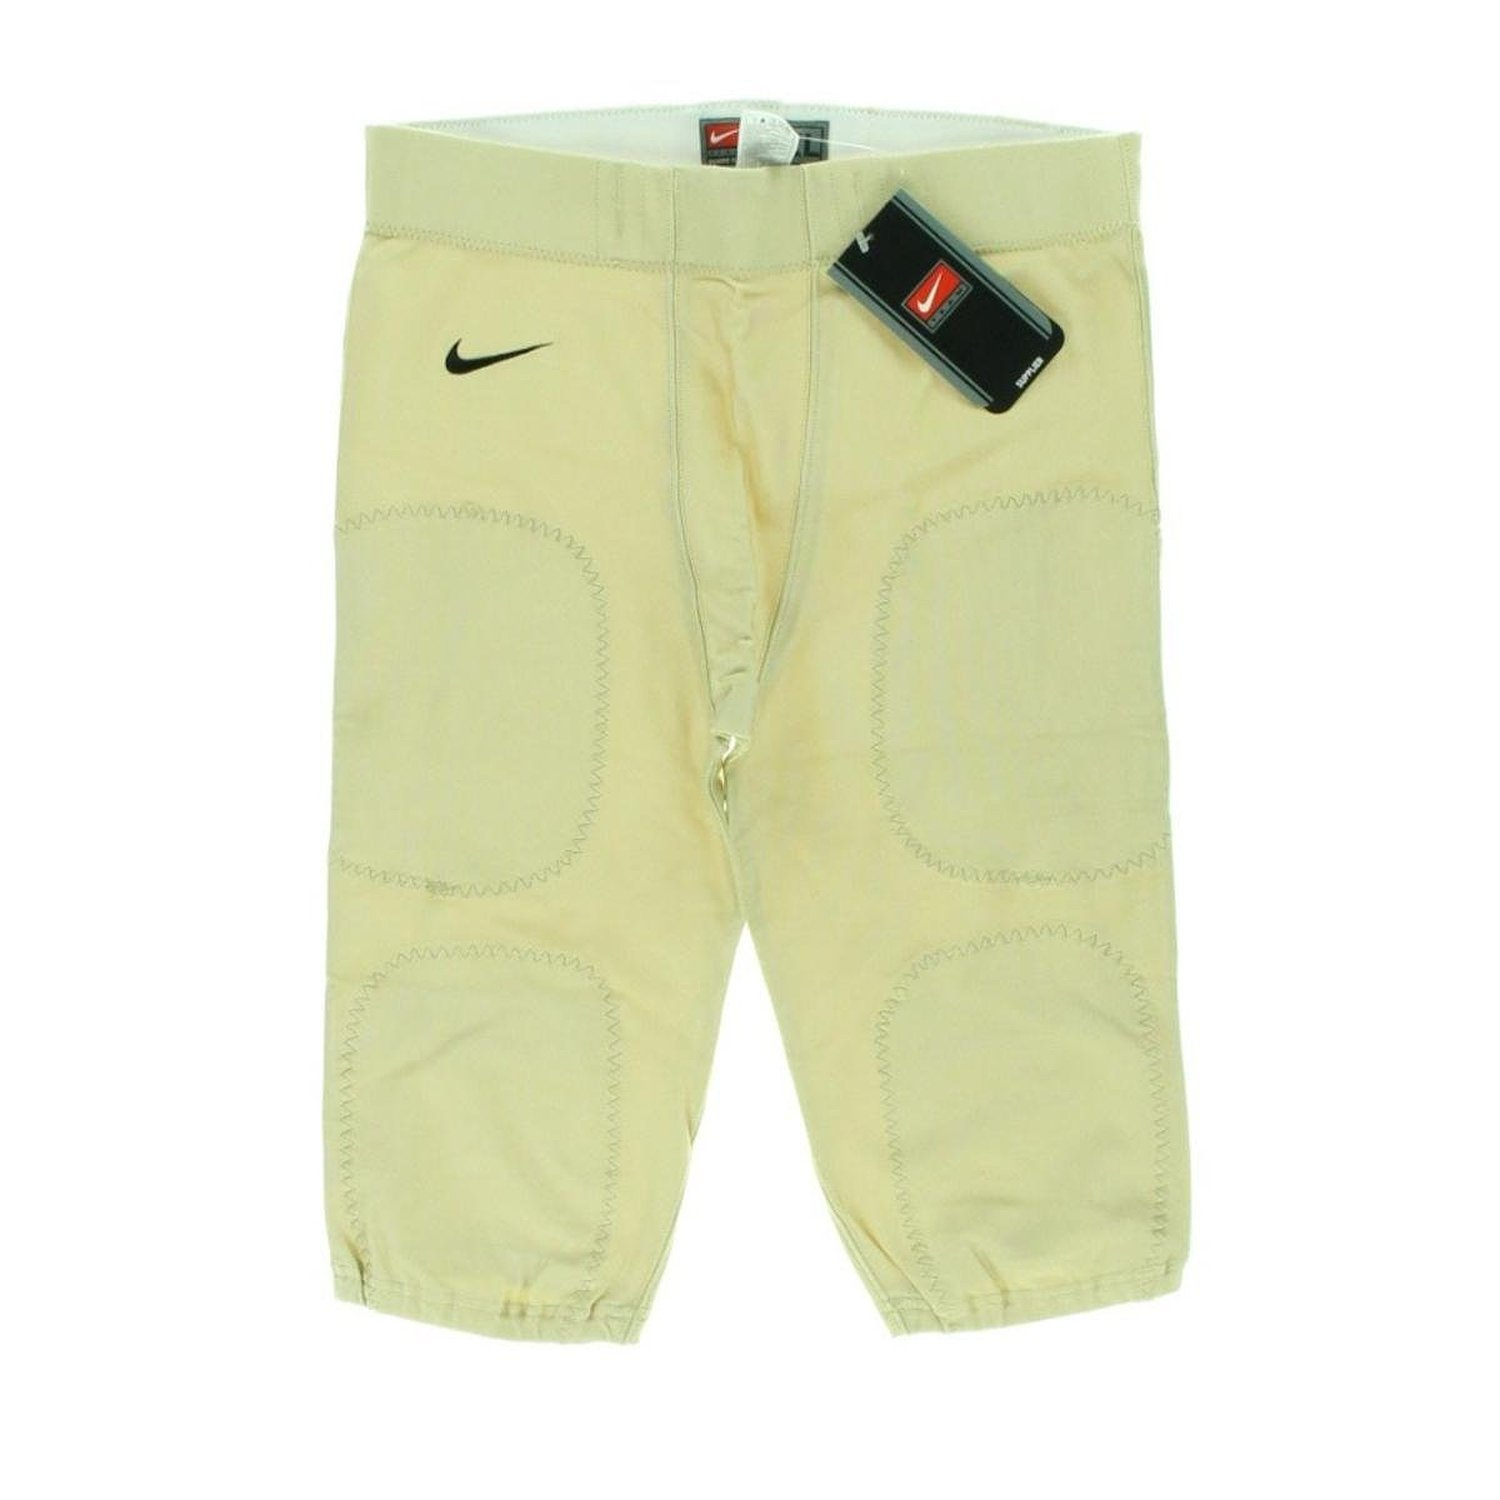 fae379dad77f Get Quotations · Nike Boys Solid Youth Football Pants